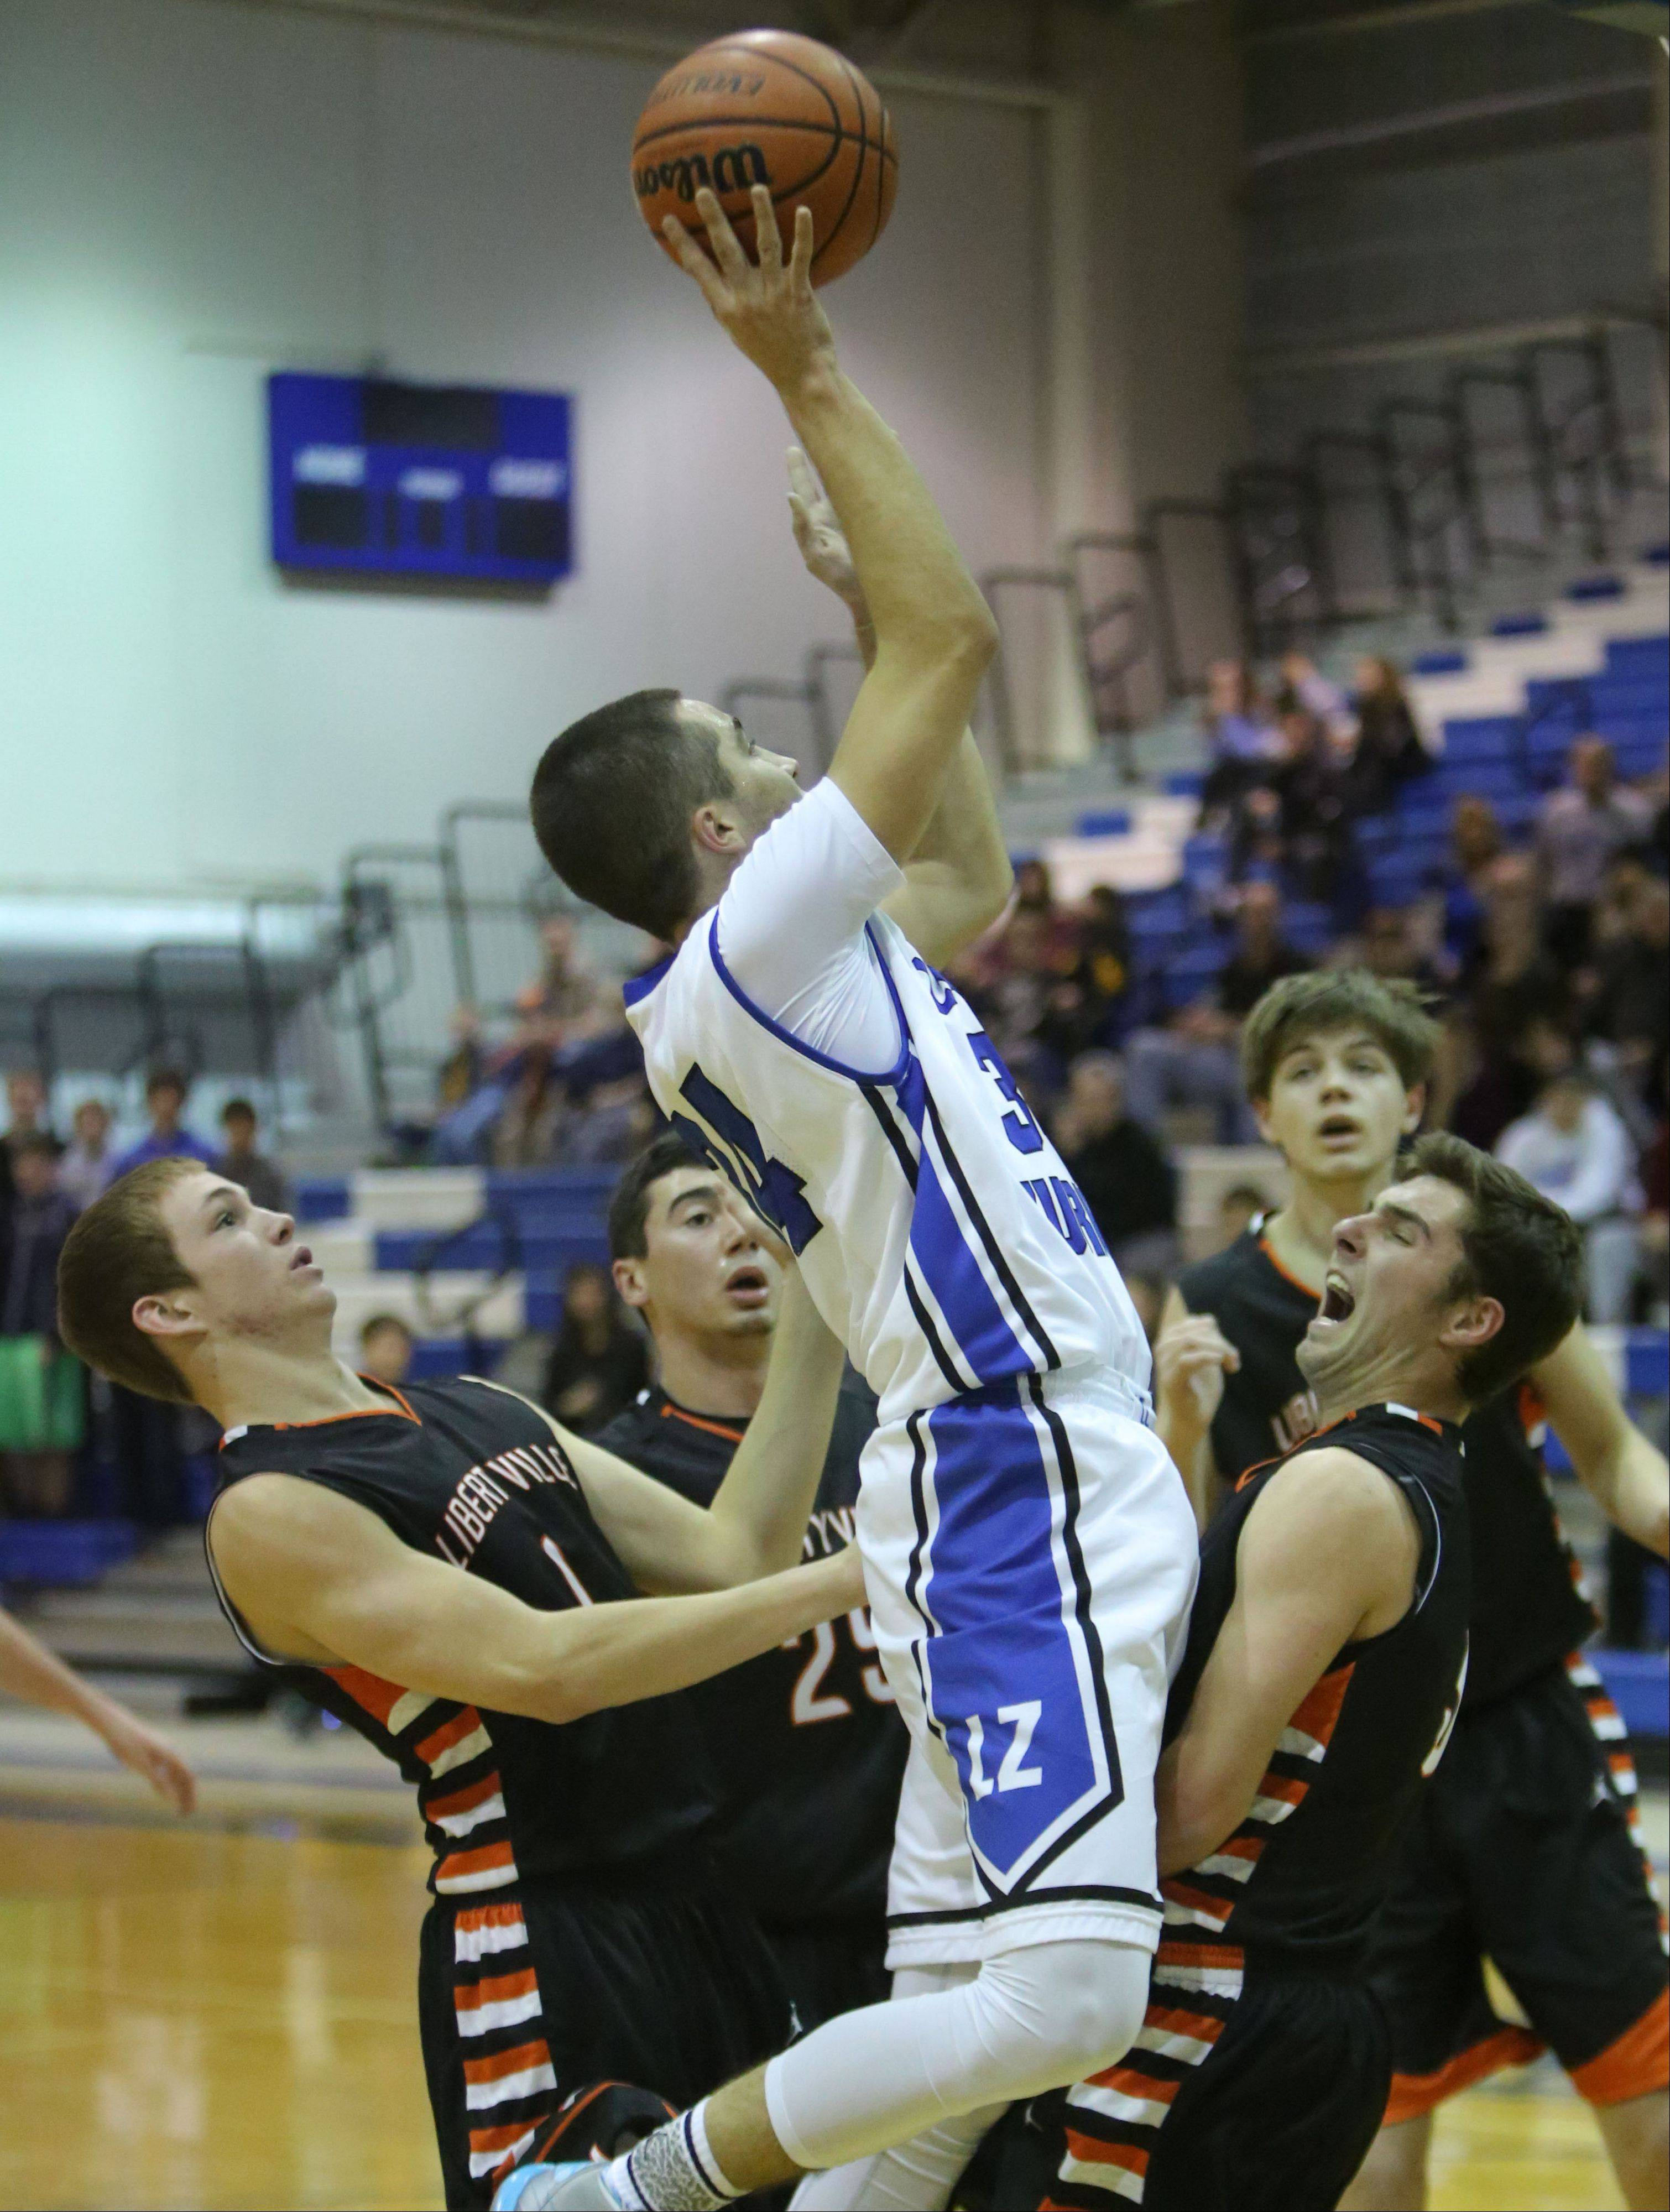 Lake Zurich's Mike Travlos, middle, drives on Libertyville players , from left, Brian Scanlan, Johnny Vernasco and Matt Reed.